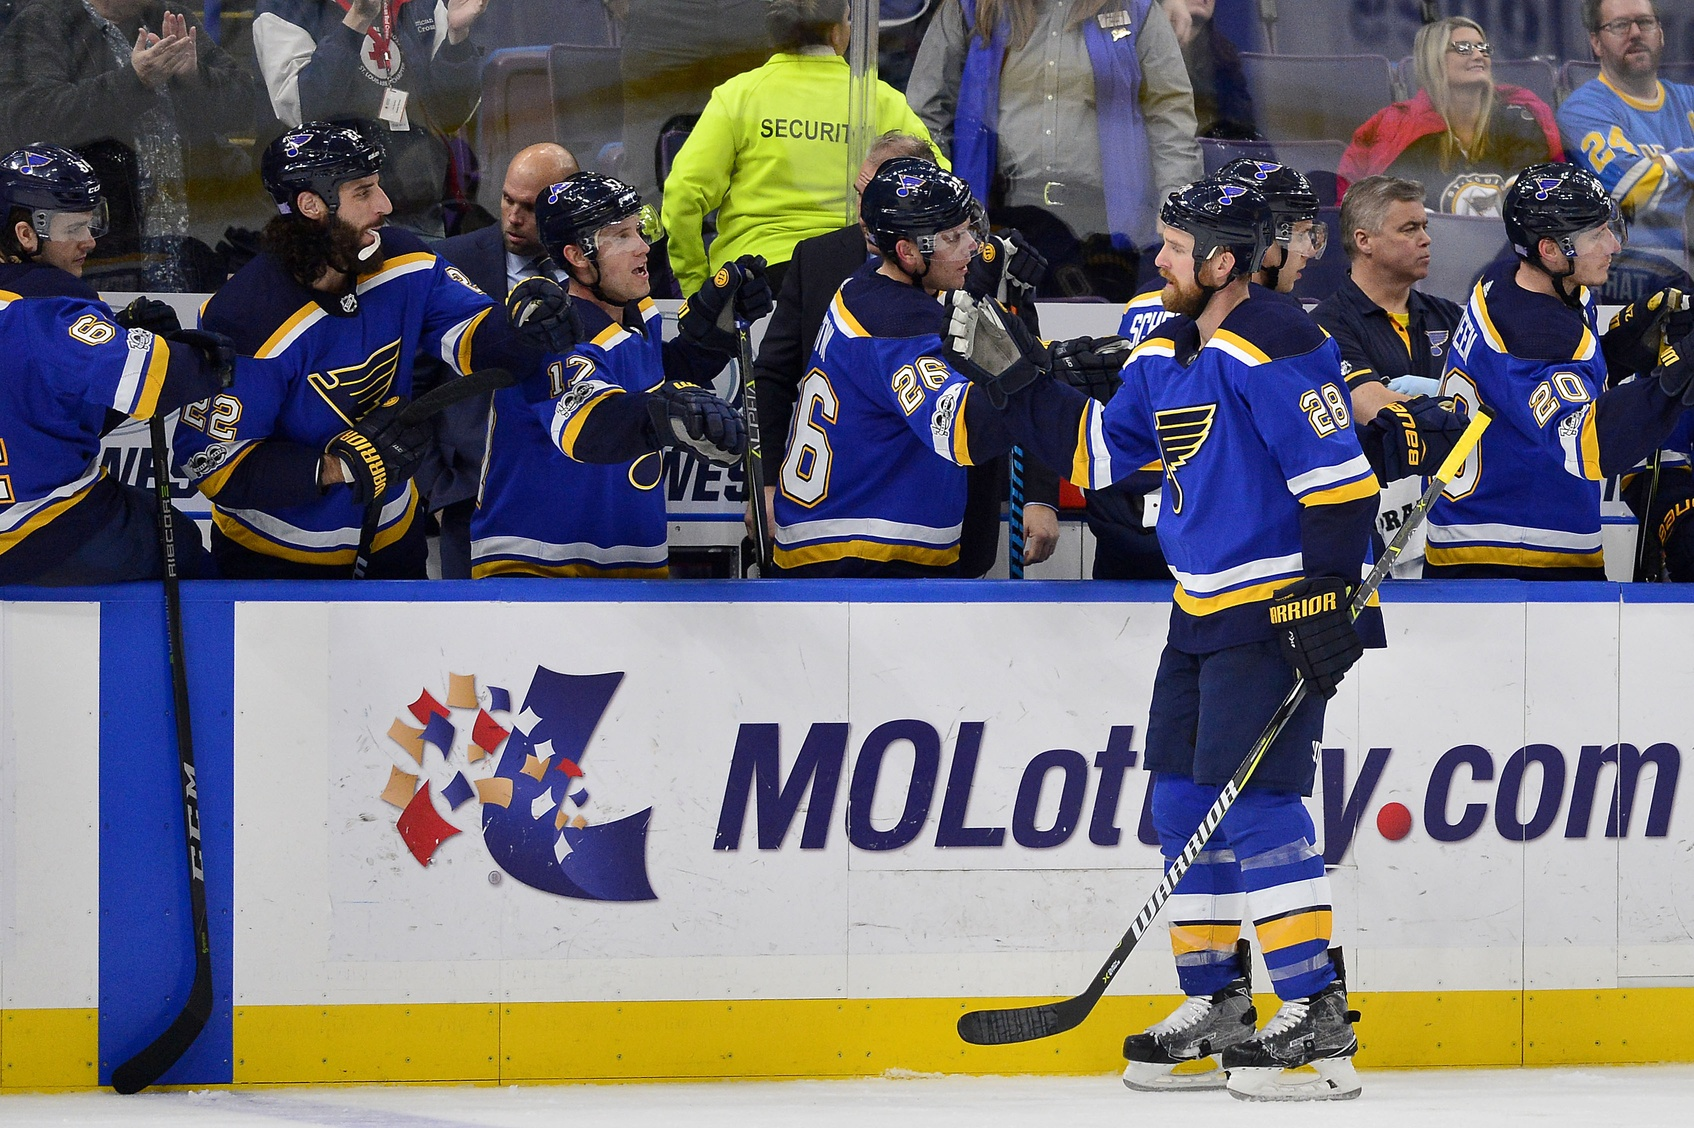 The Blues are planning to use a revolving lineup